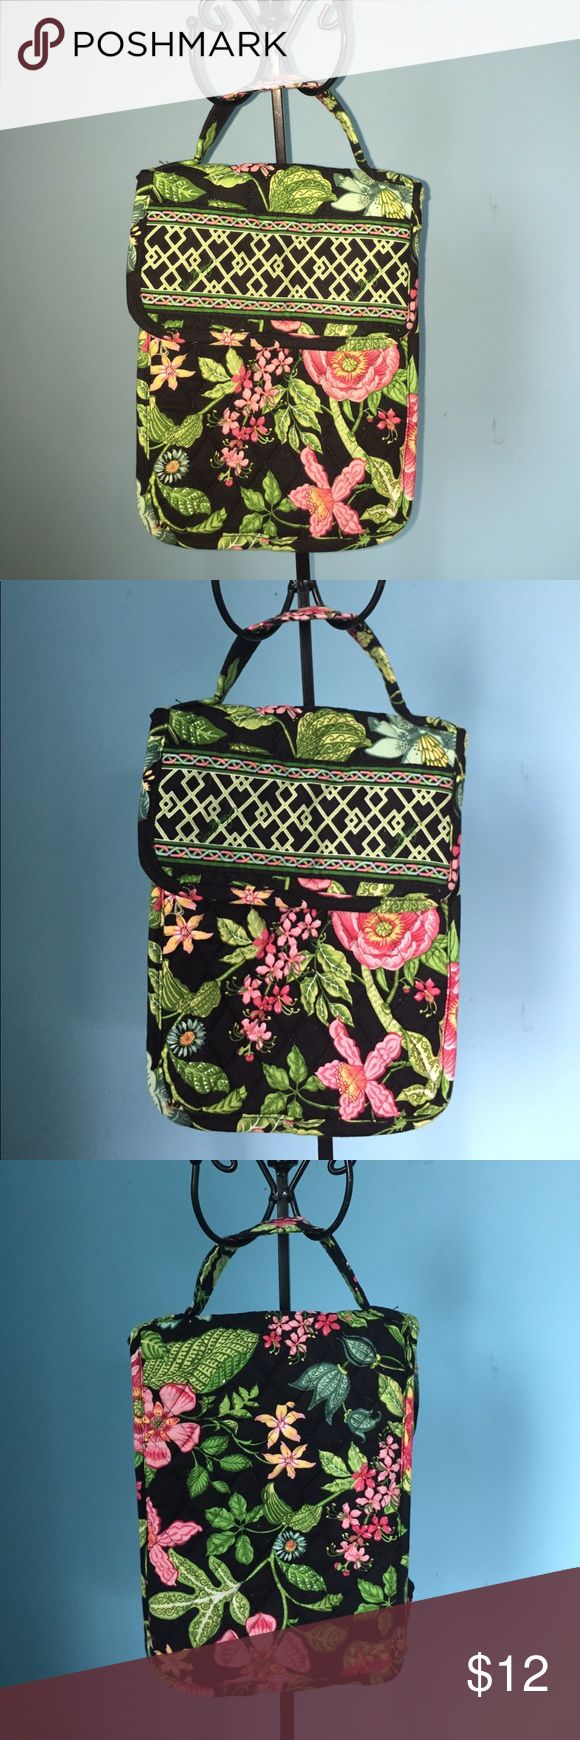 """RETIRED Vera Bradley Botanica out to Lunch Bag RETIRED Vera Bradley Botanica out to Lunch Bag  Vera Bradley Botanica out to Lunch Bag Wallet Retired Jan 2007 - Jul 2008  Dimensions - 10""""x7""""x  5""""approx   2 inside pockets one for cold!  And Heavy Duty Velcro Closure. Vera Bradley Bags"""